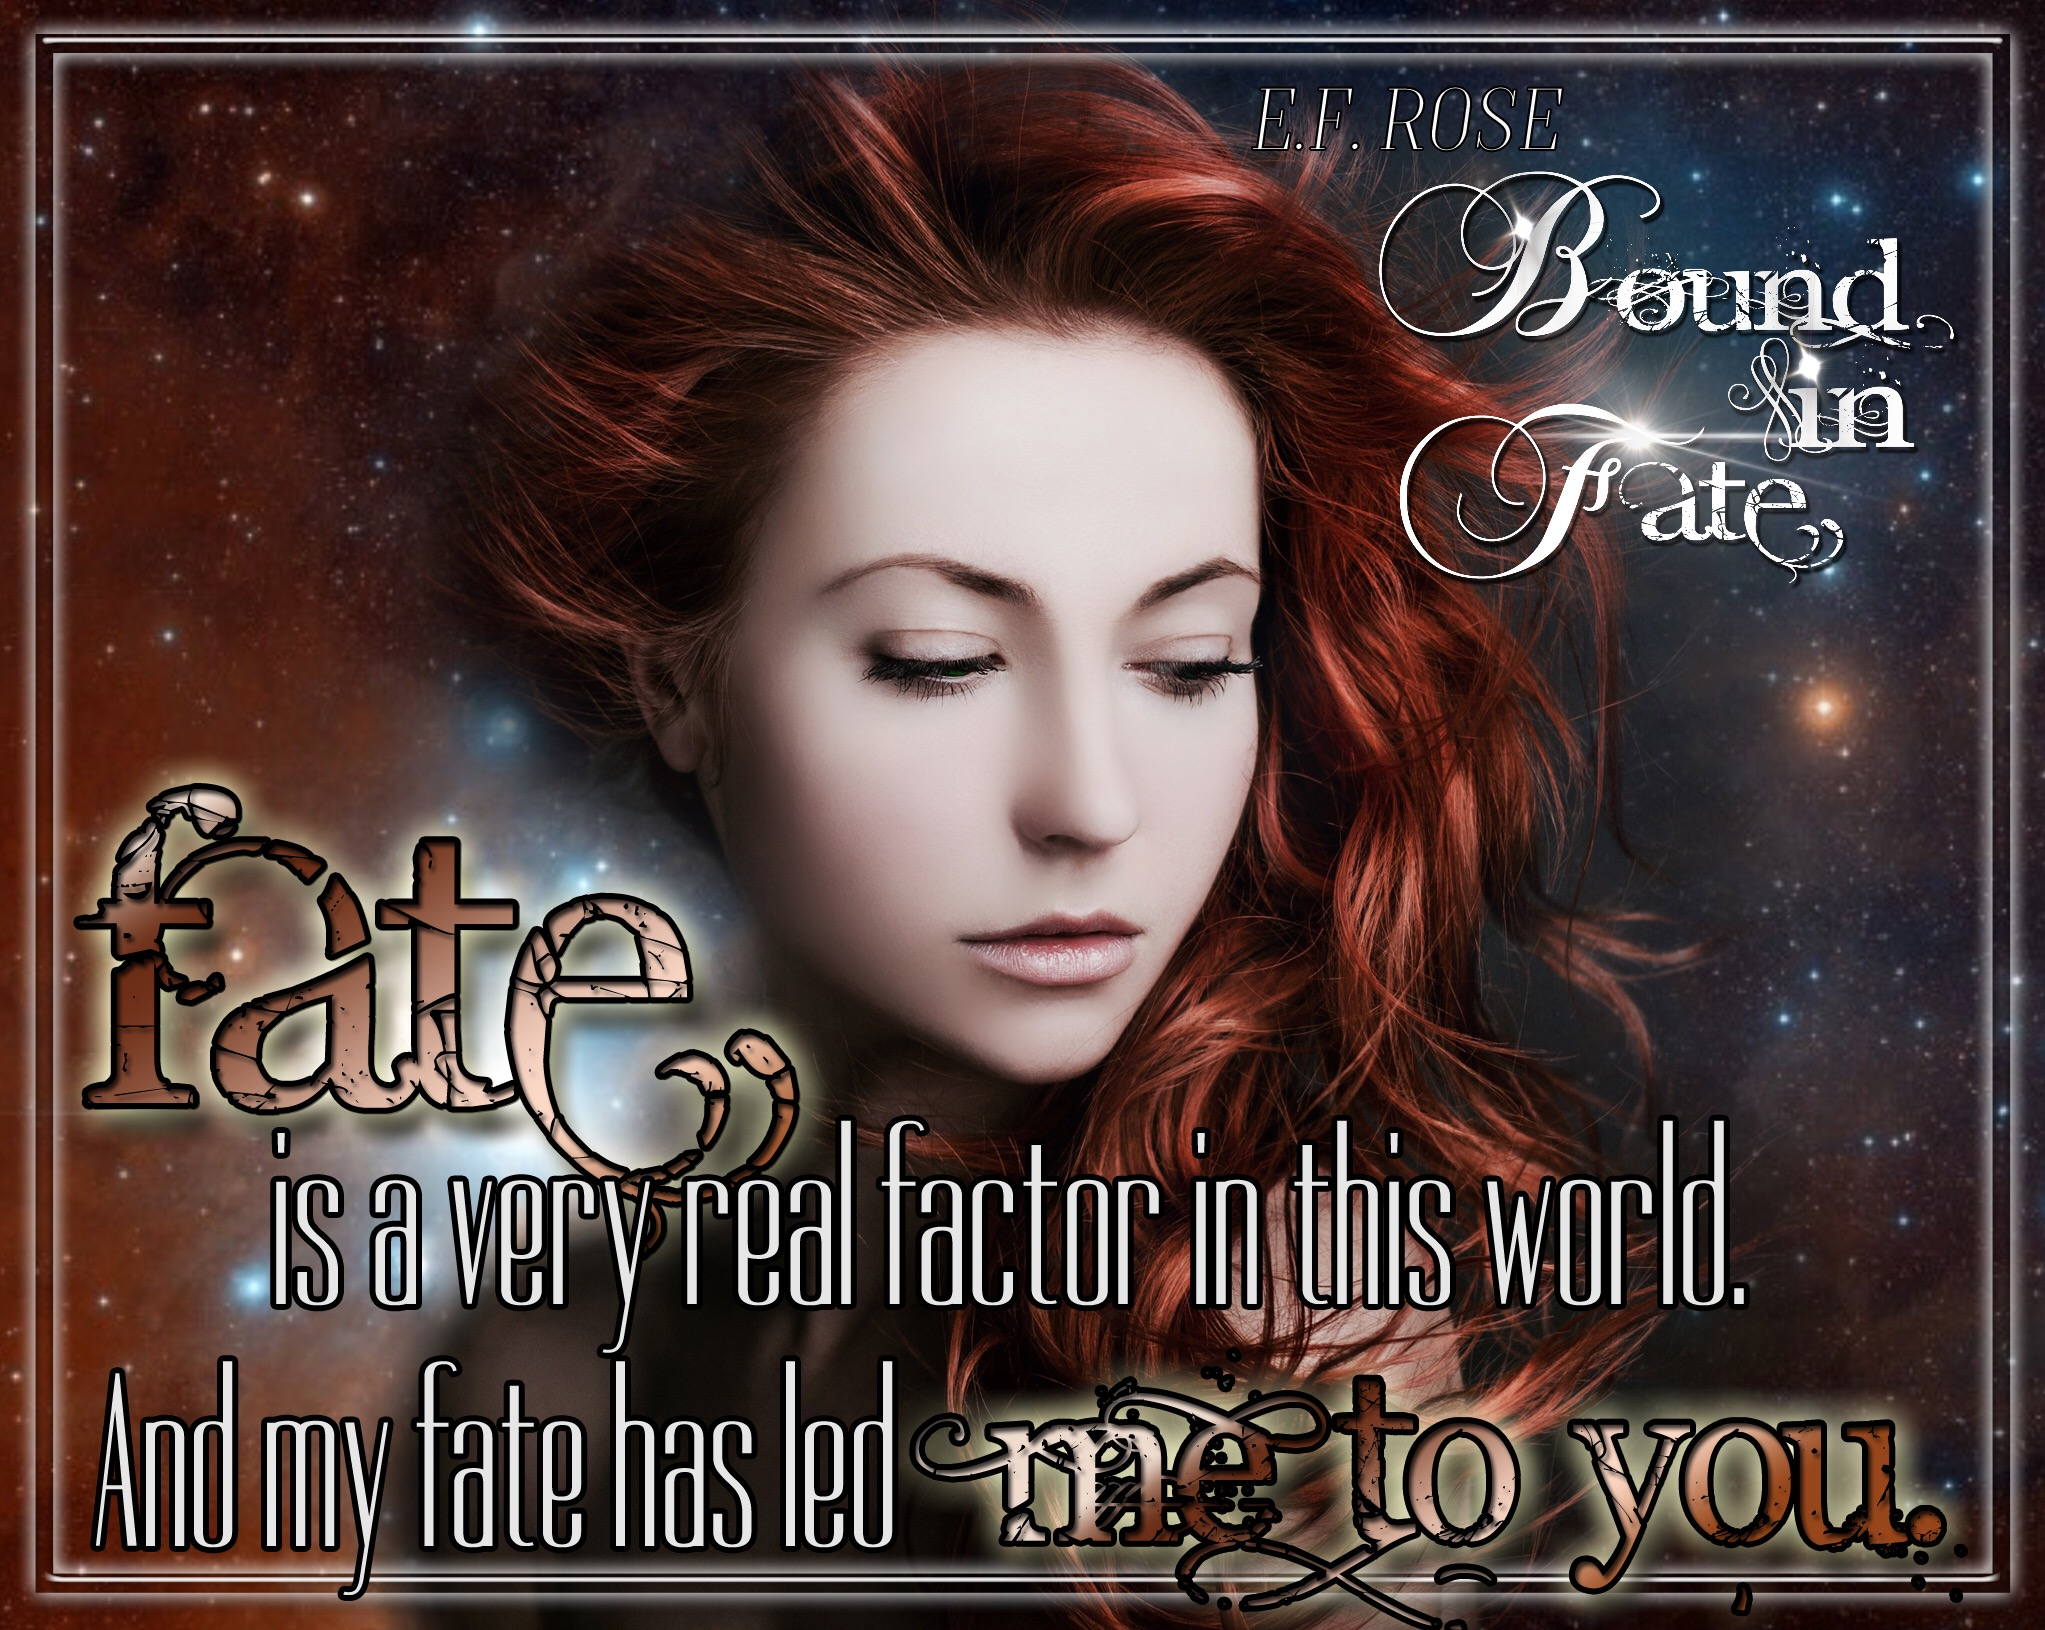 Bound in Fate (Emily Rose)